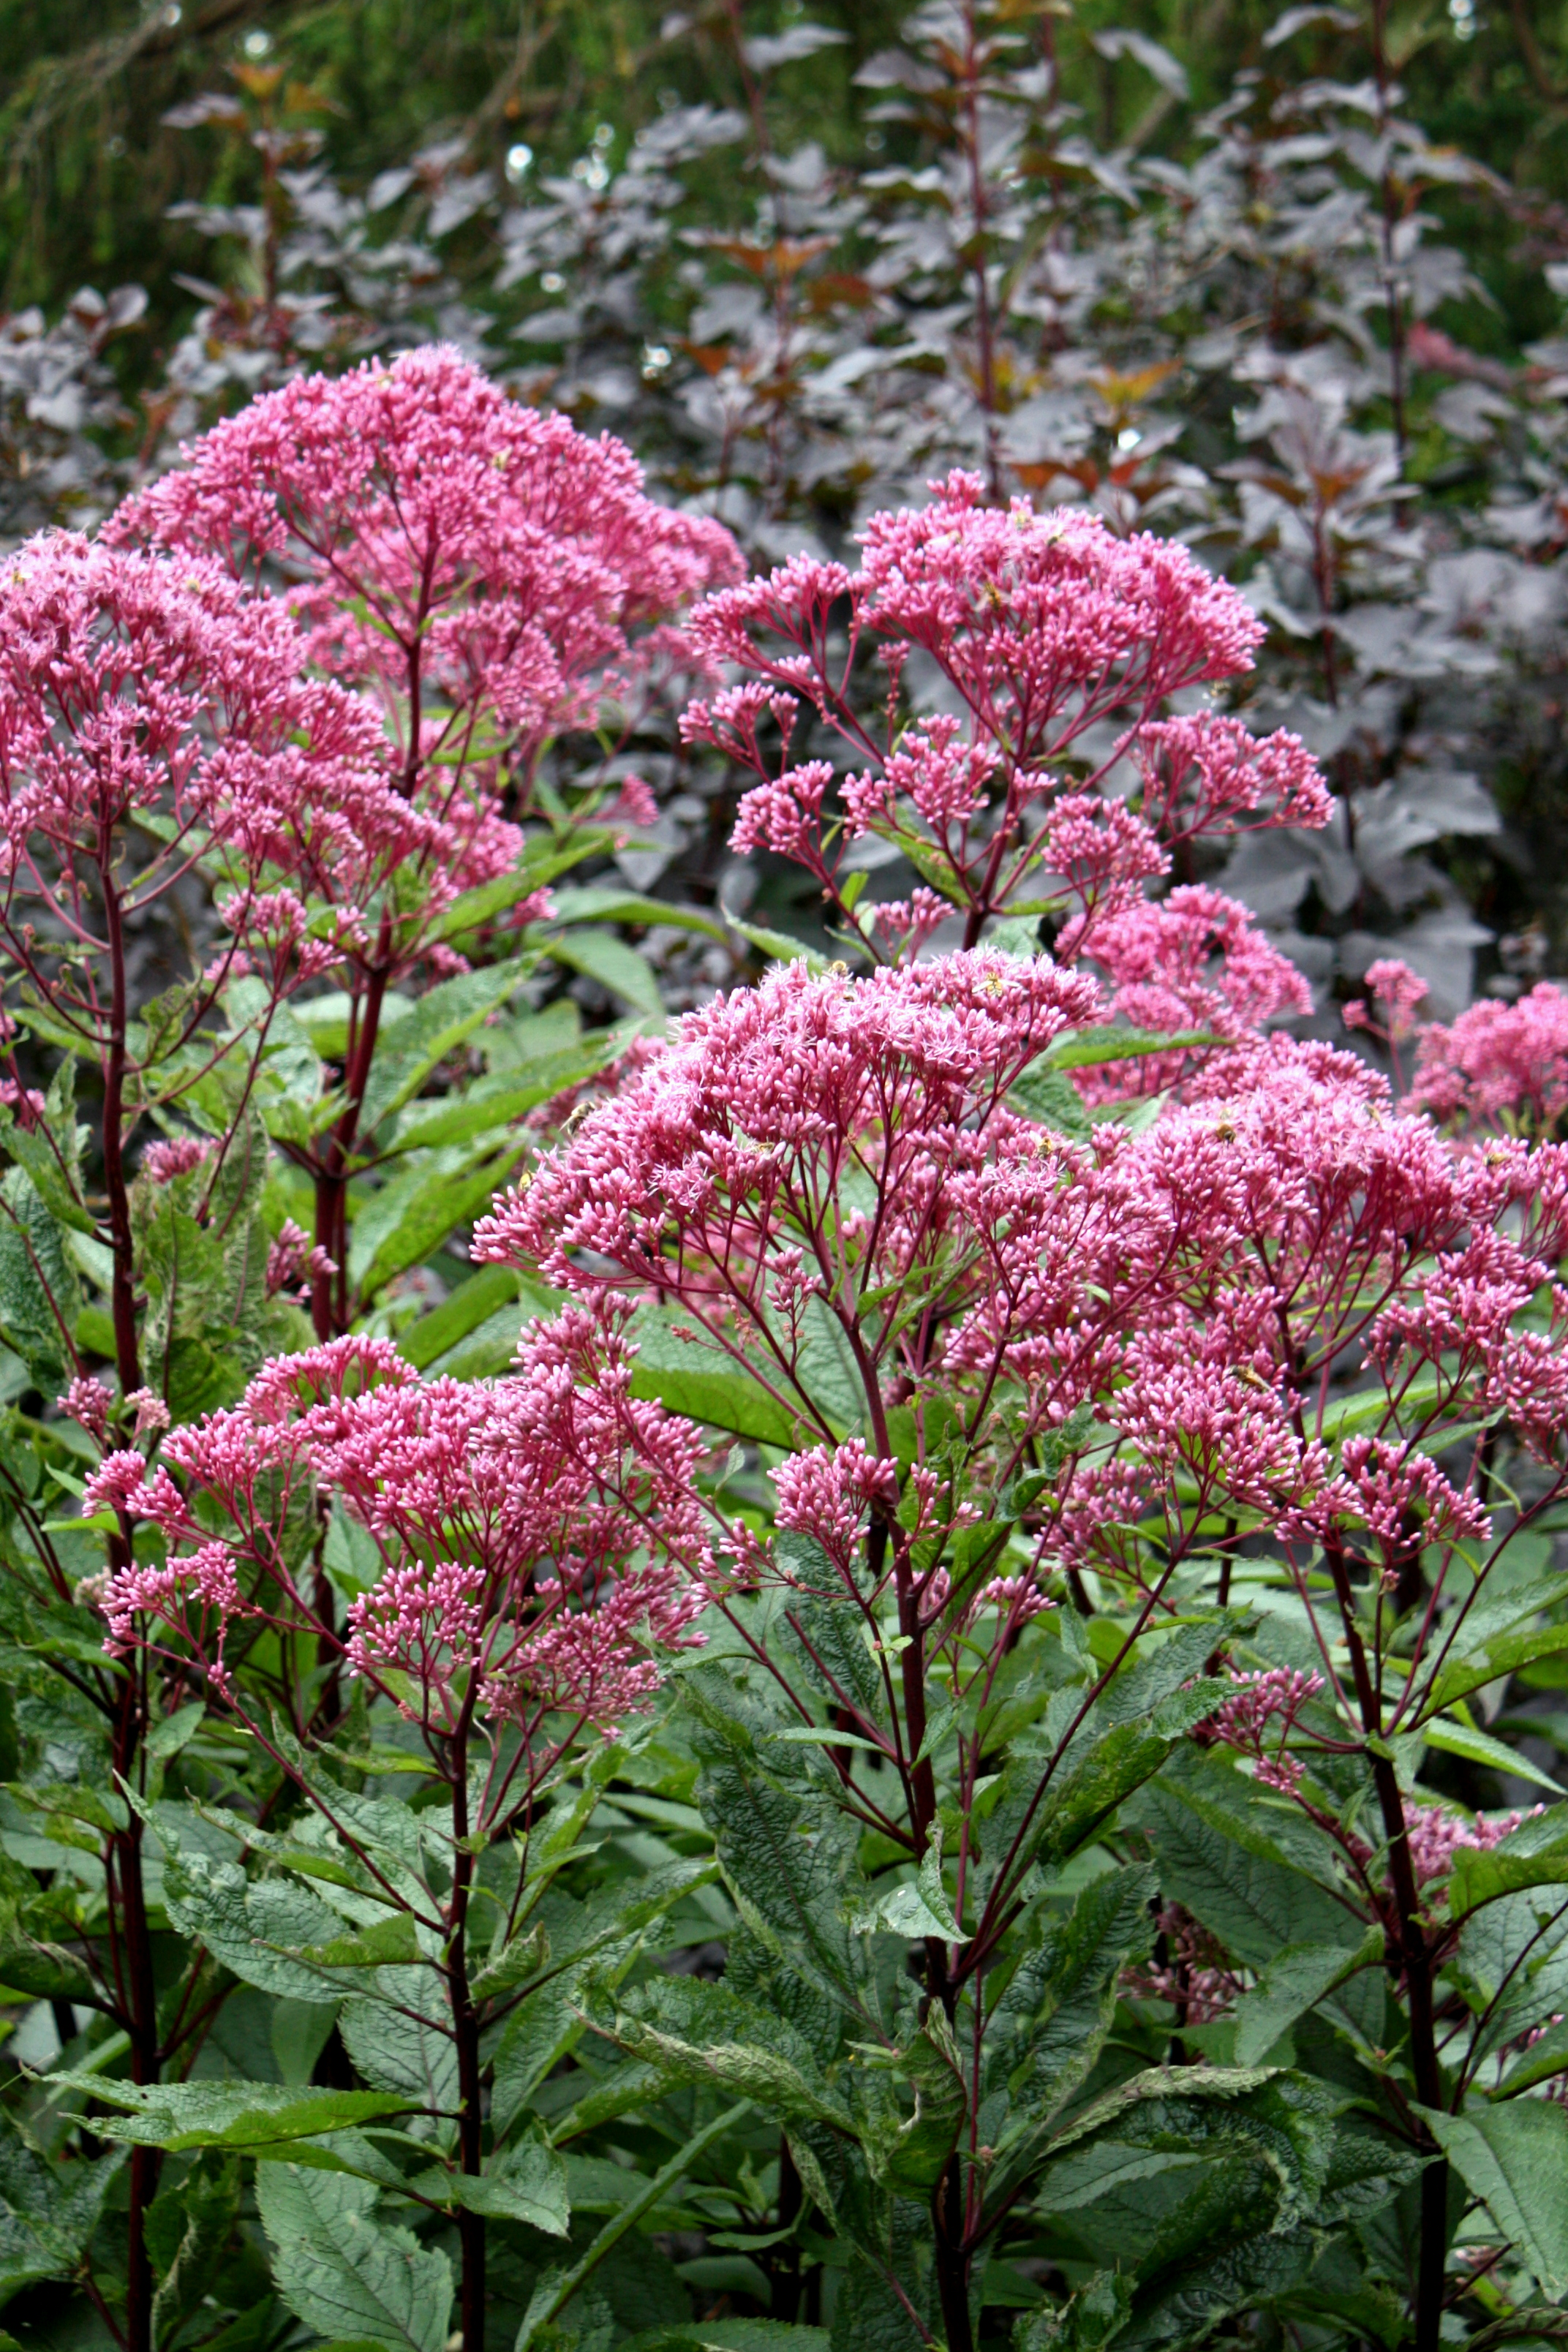 Daily flower candy eupatorium purpureum the frustrated gardener eupatorium purpureum tintinhull august 2012 mightylinksfo